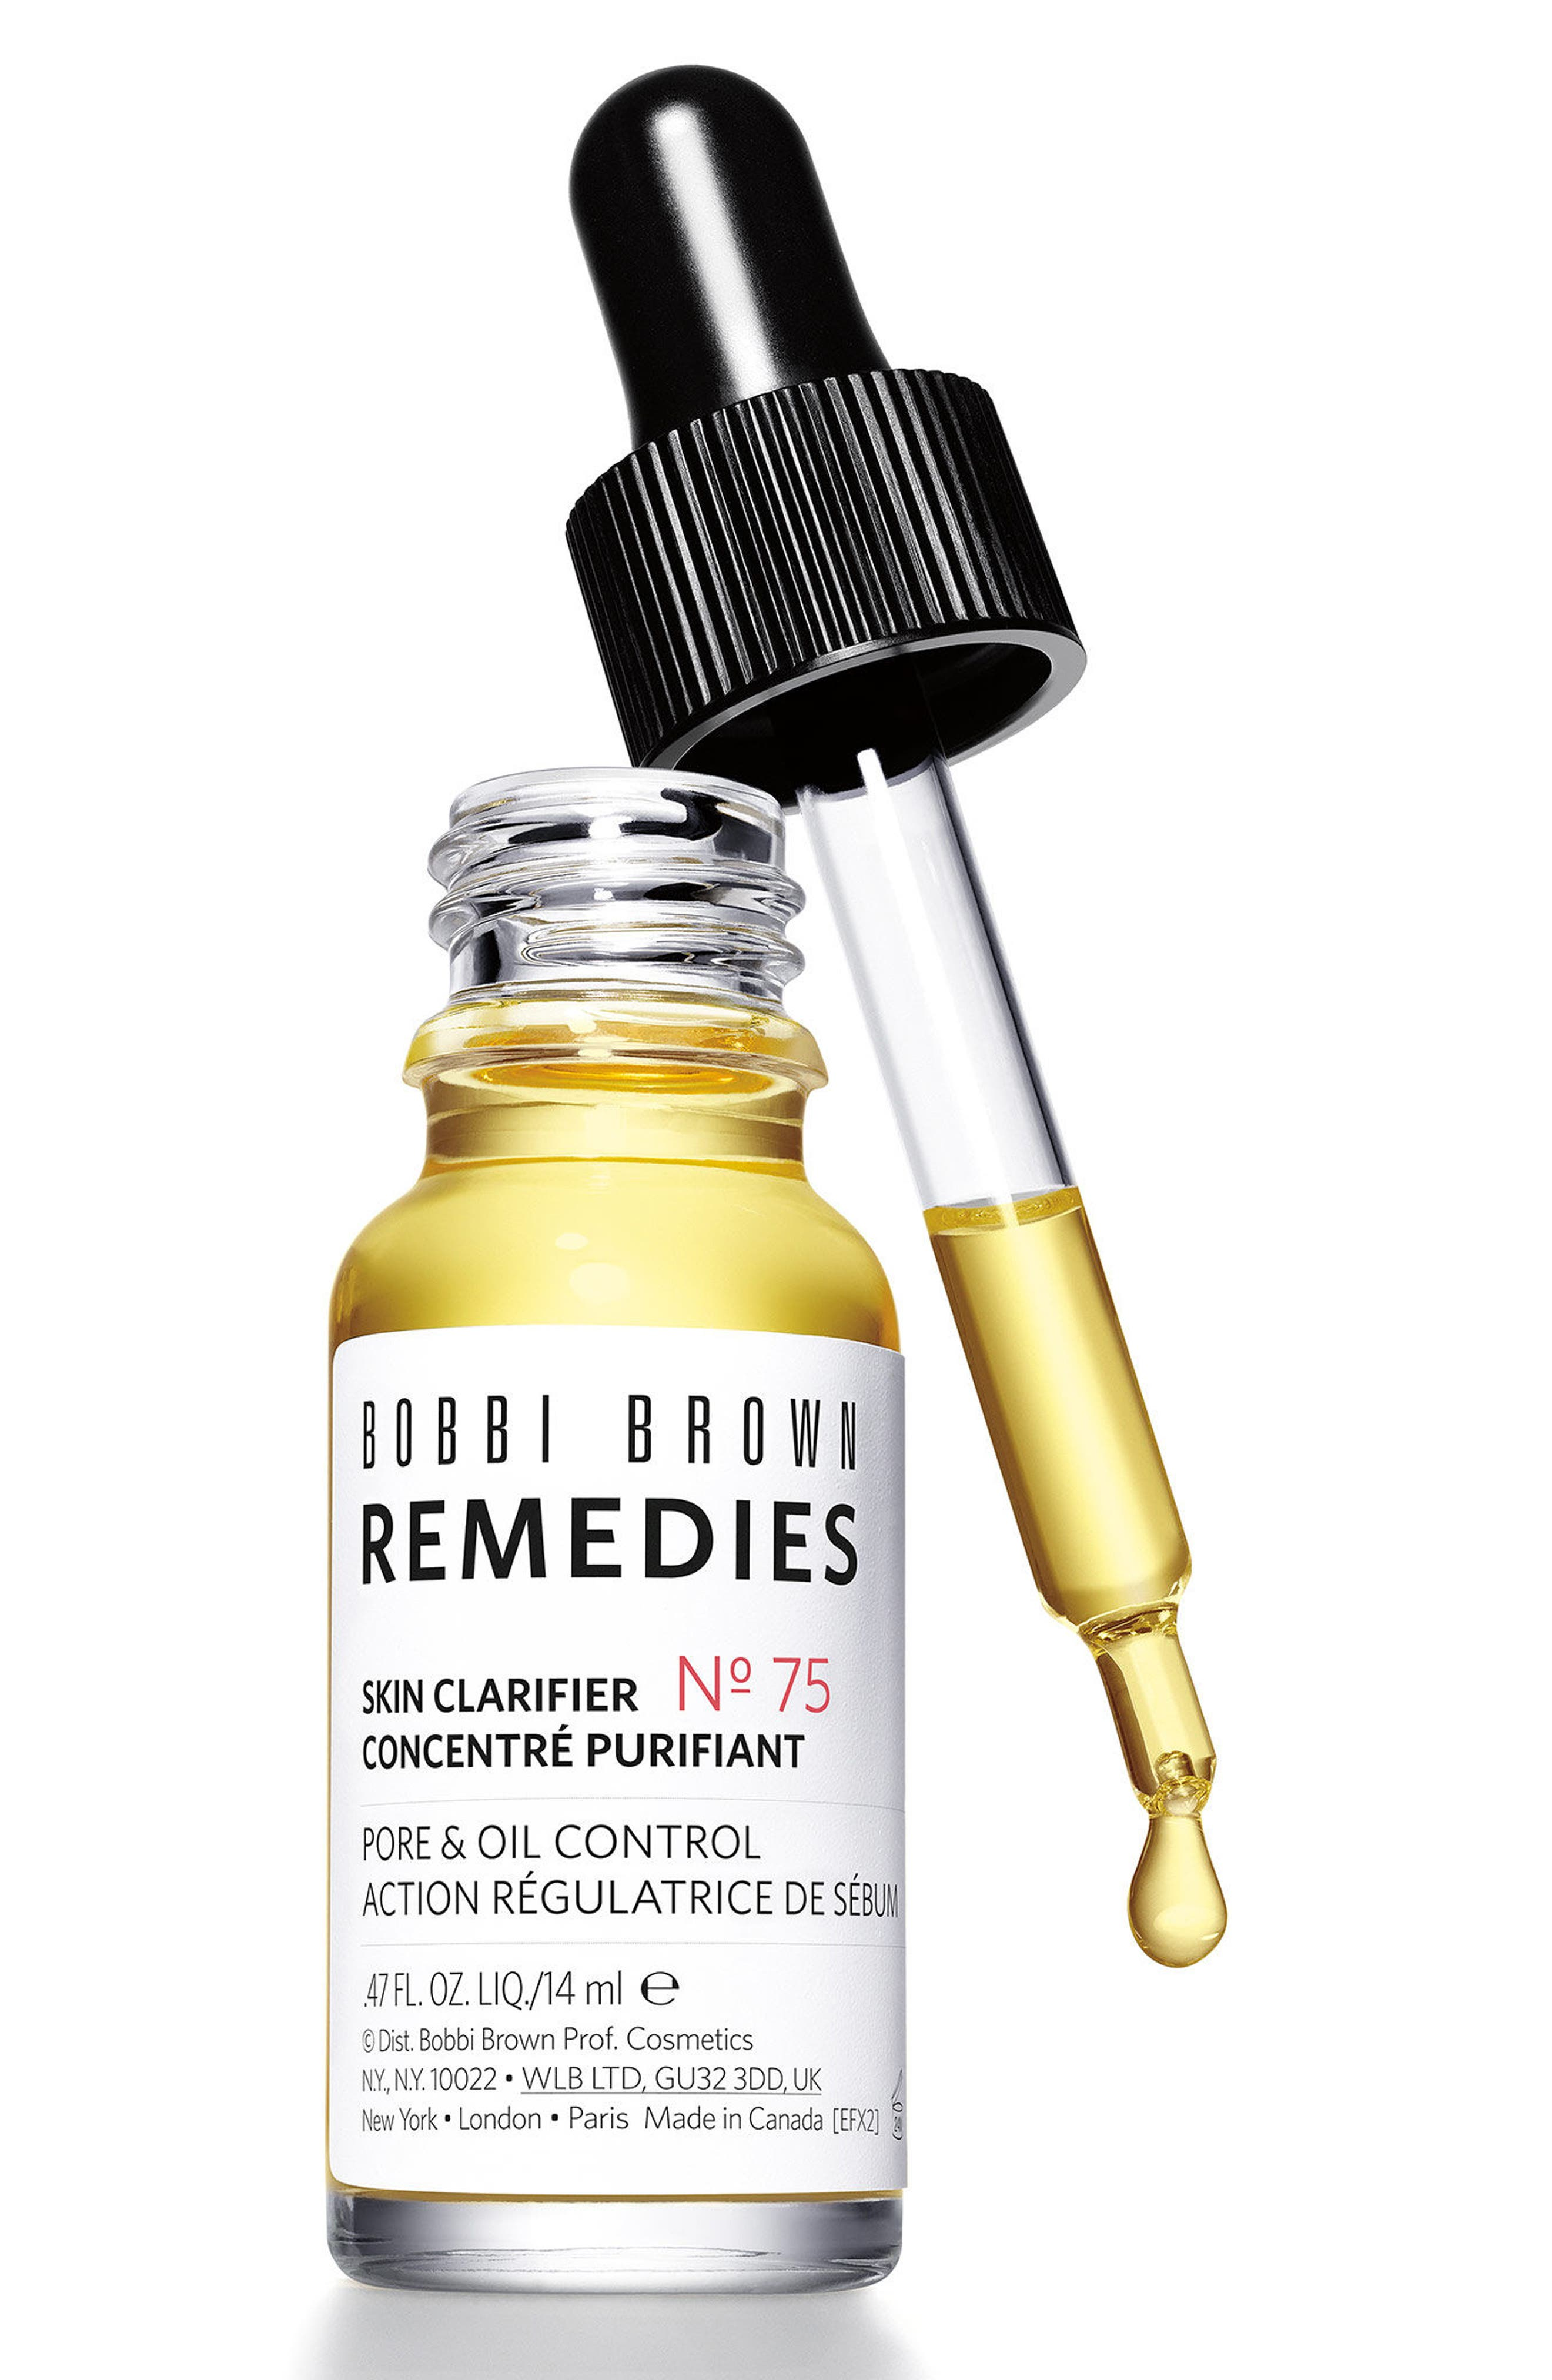 BOBBI BROWN Remedies Skin Clarifier Pore & Oil